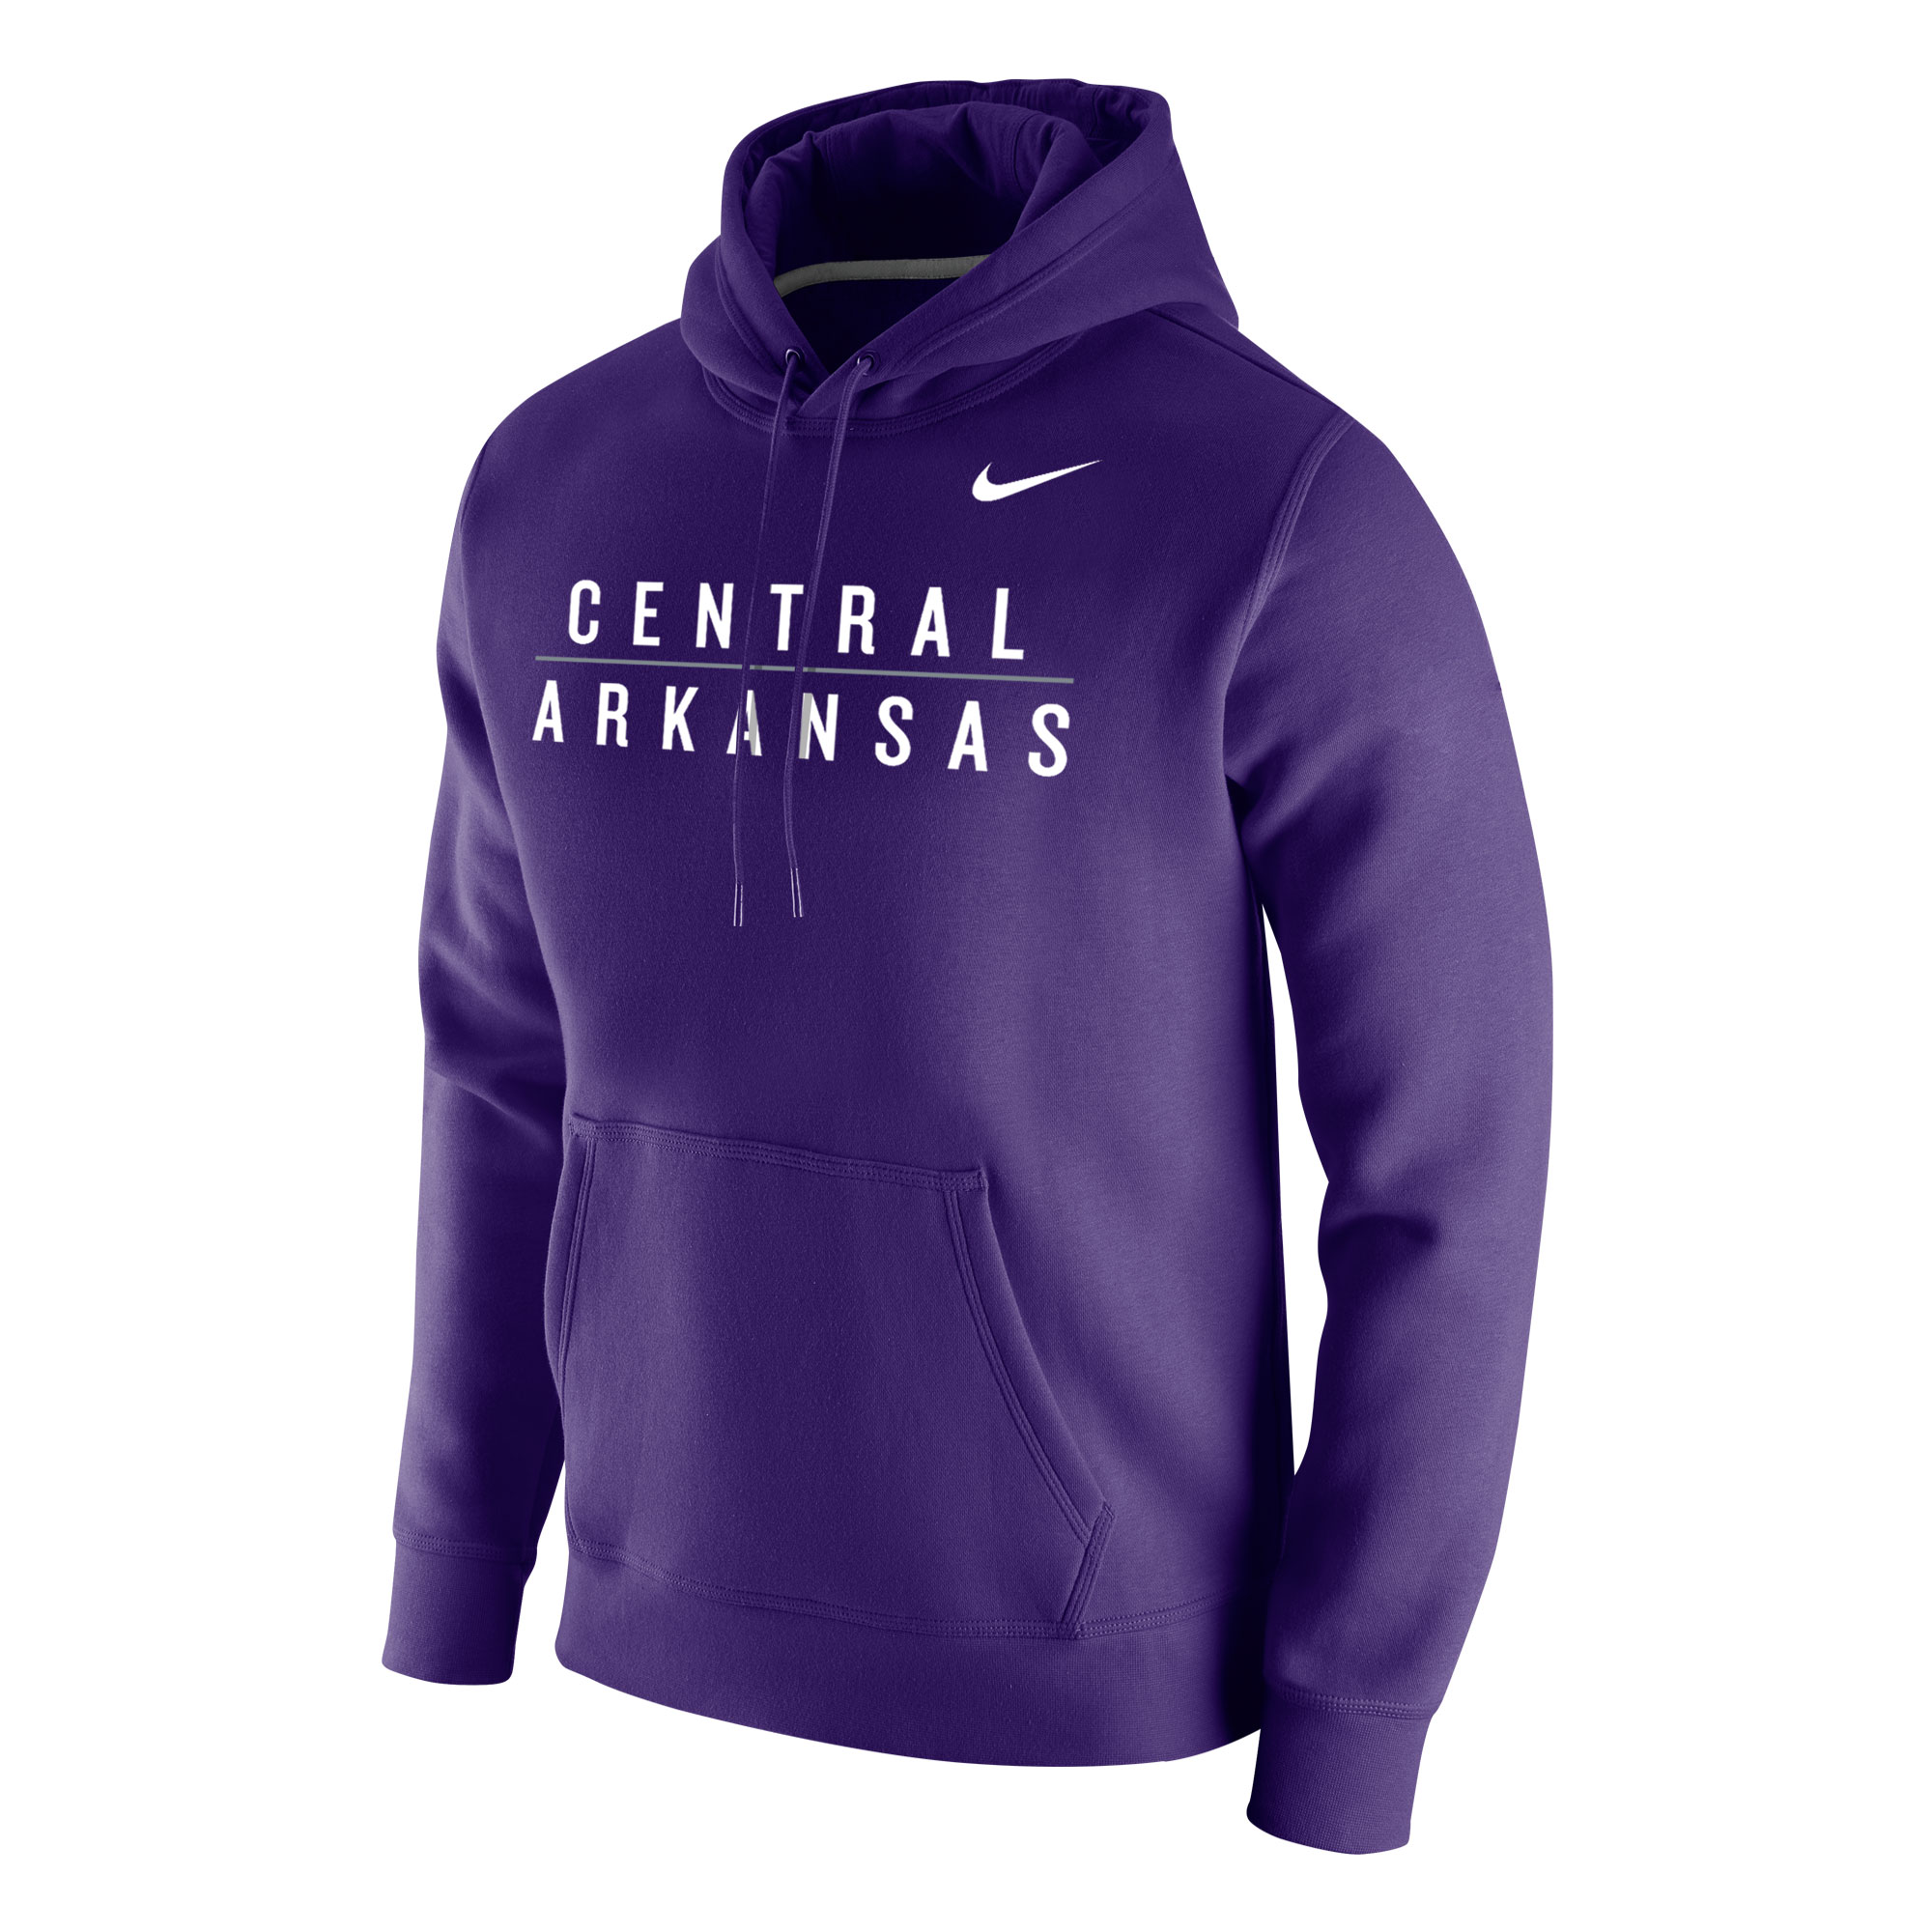 Central Arkansas Fleece PO Hoody